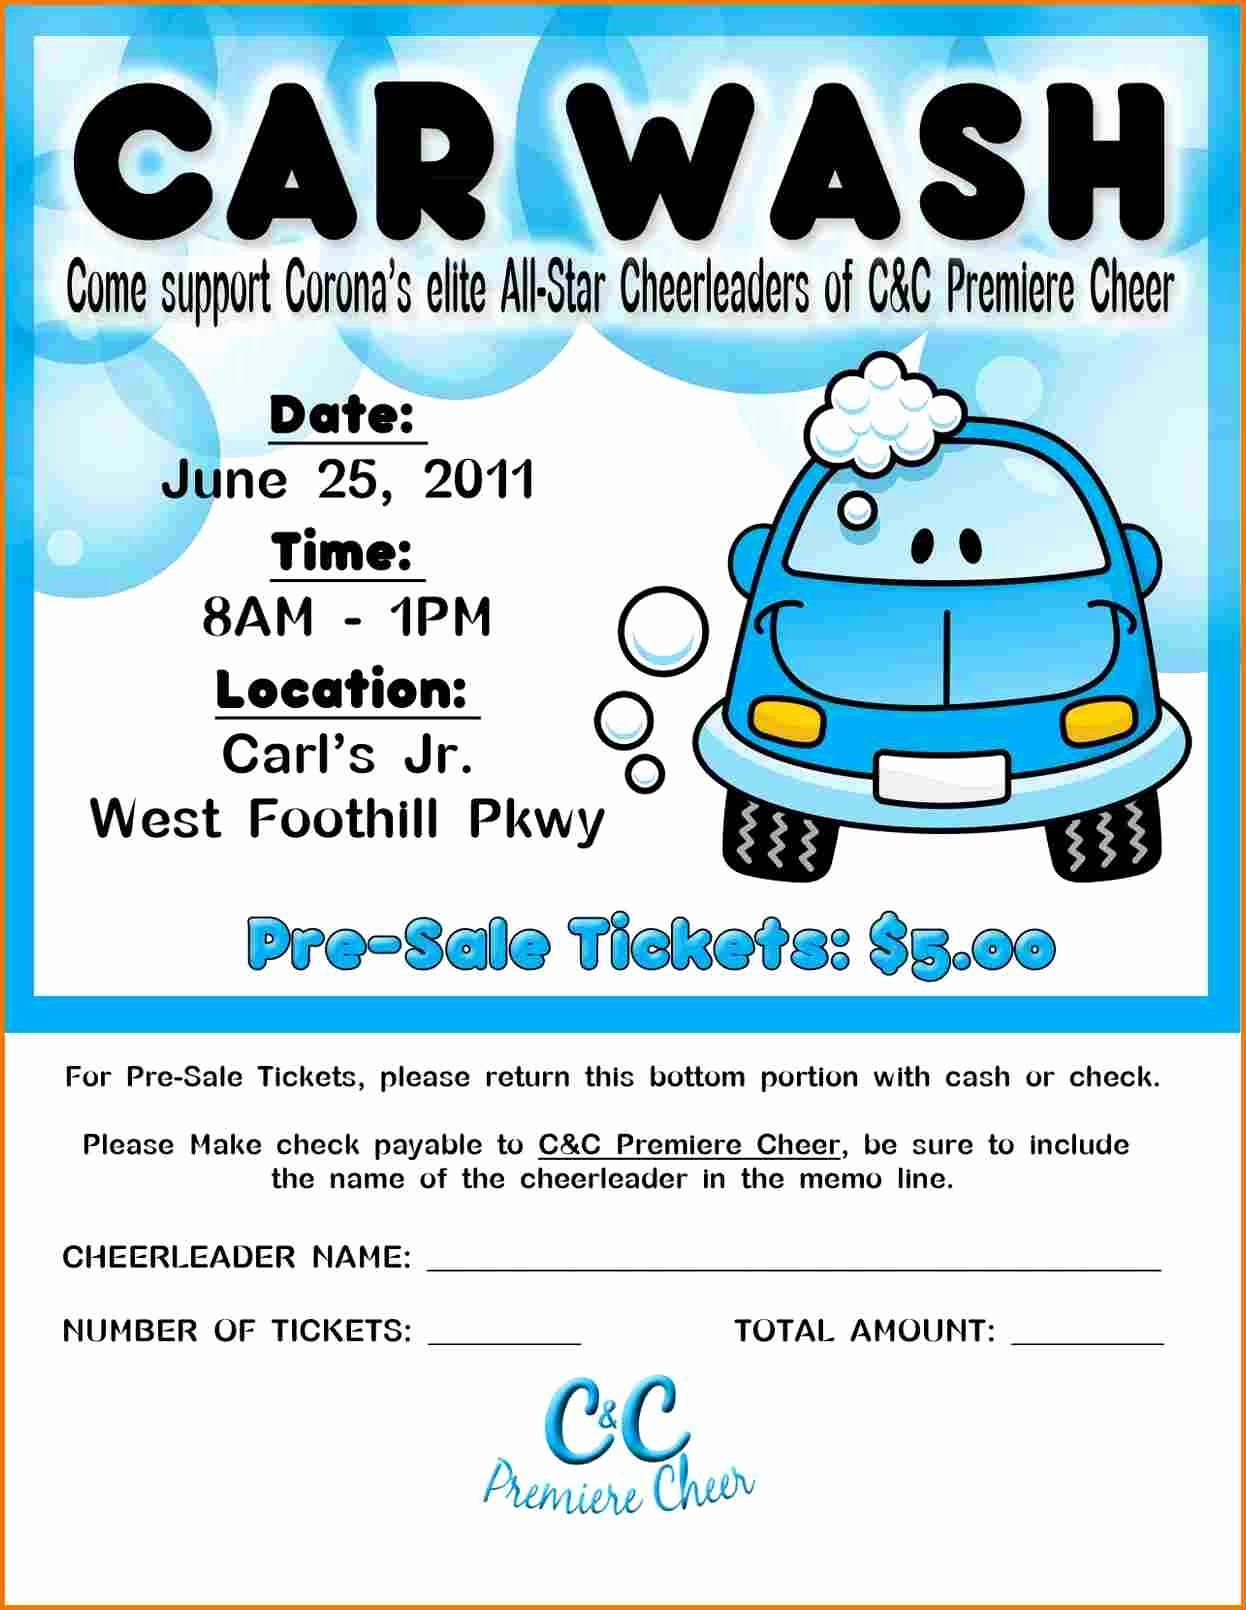 Car Wash Flyer Template Free Best Of Car Wash Flyer Template